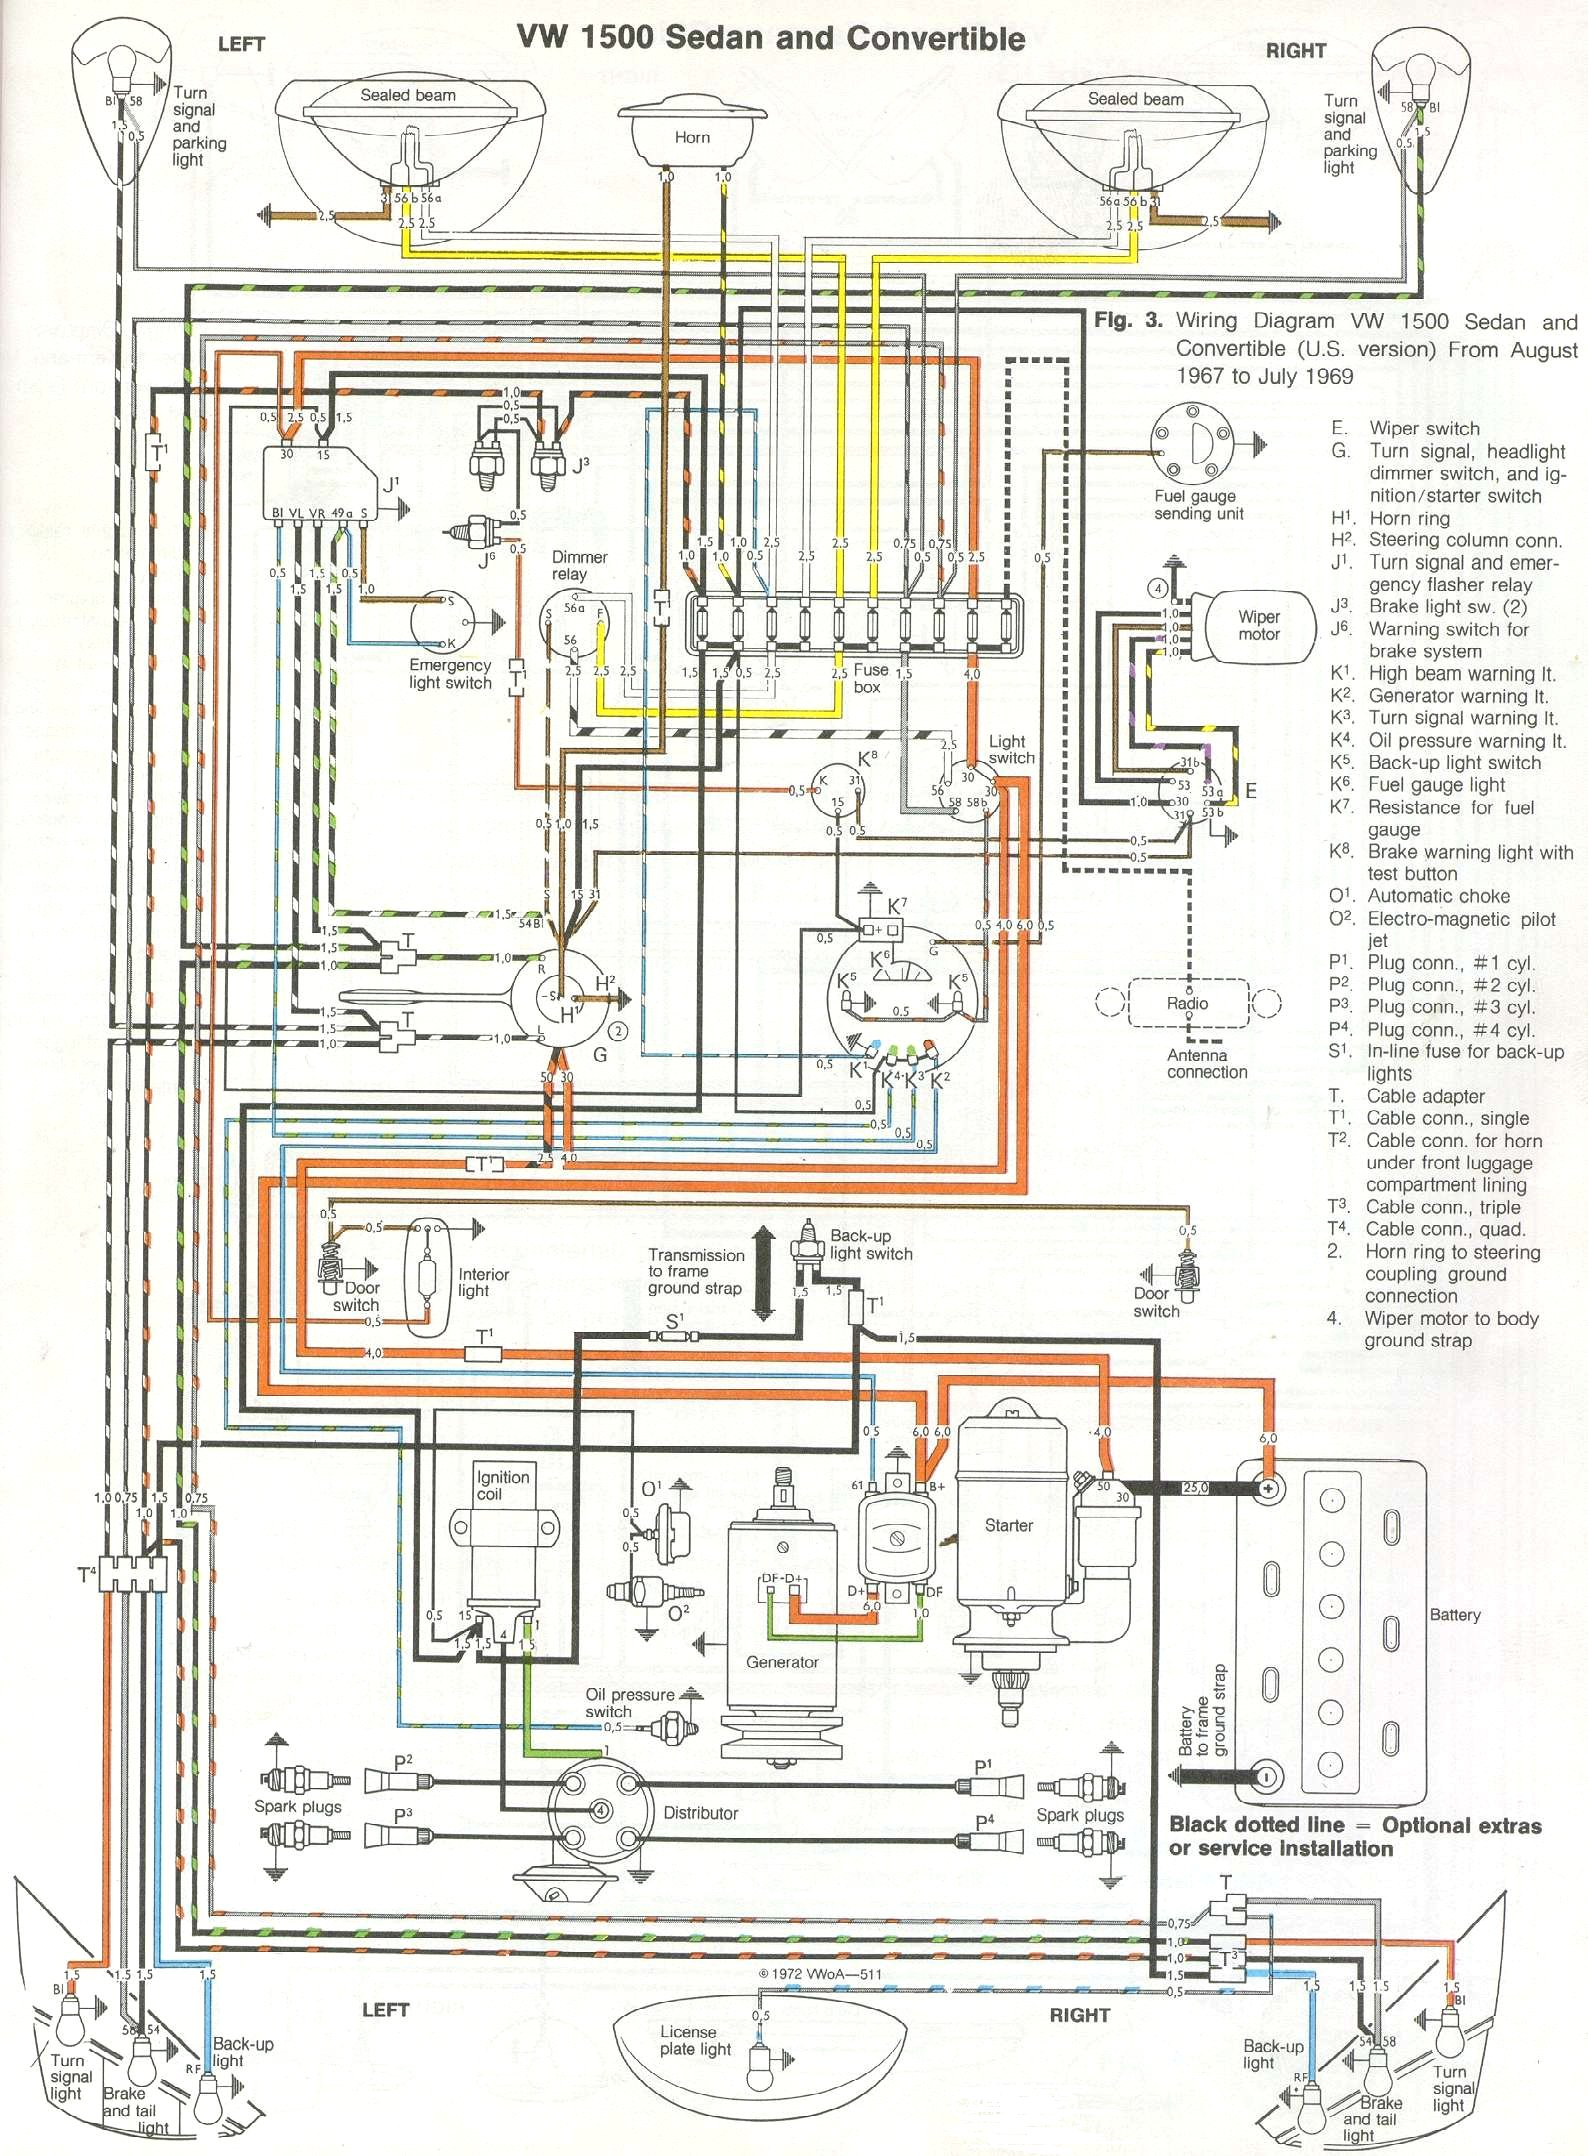 71 Vw Beetle Wire Diagram Auto Electrical Wiring Diagram Volkswagen Beetle  Wiring Harness 2003 Vw Beetle Wiring Harness